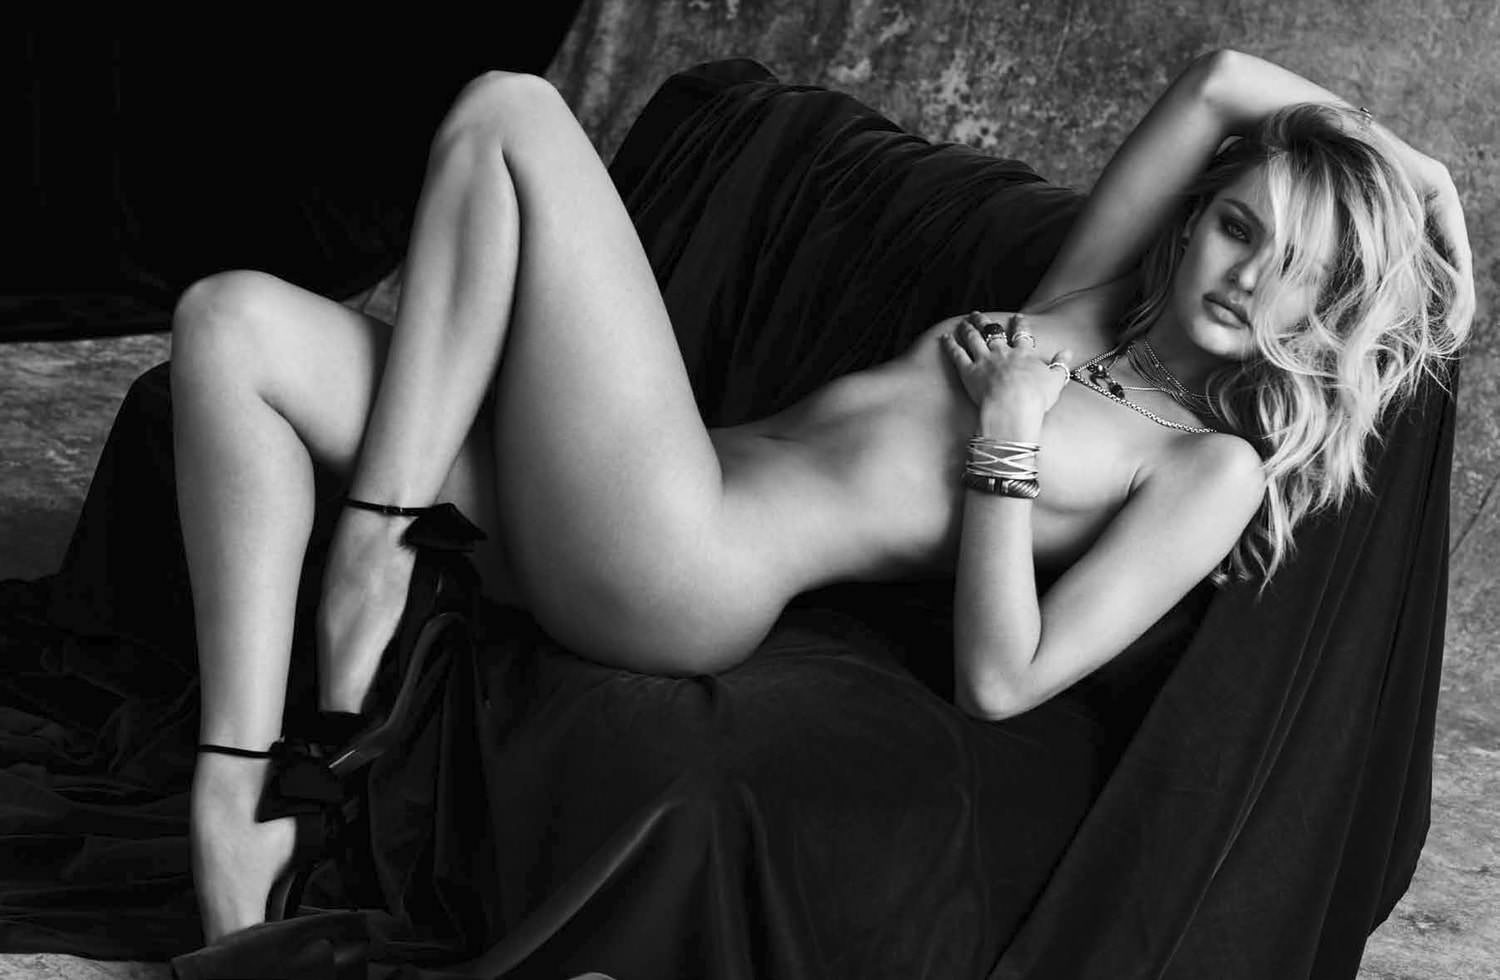 Candice Swanepoel Nudes And Porn! 0034